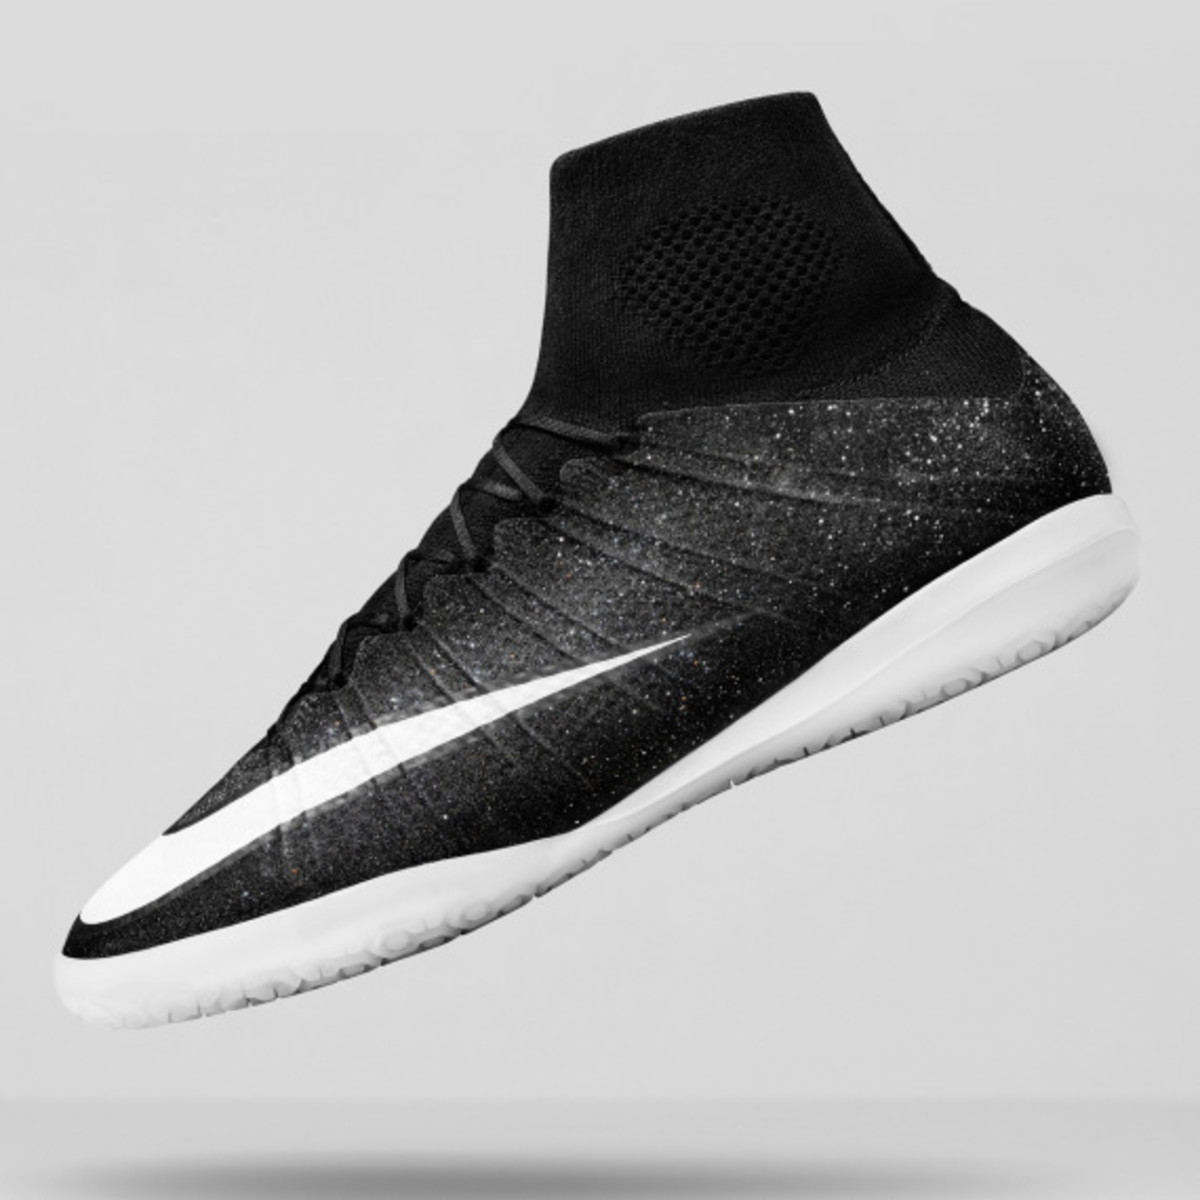 Nike Elastico Superfly IC SE - Officially Unveiled - 0